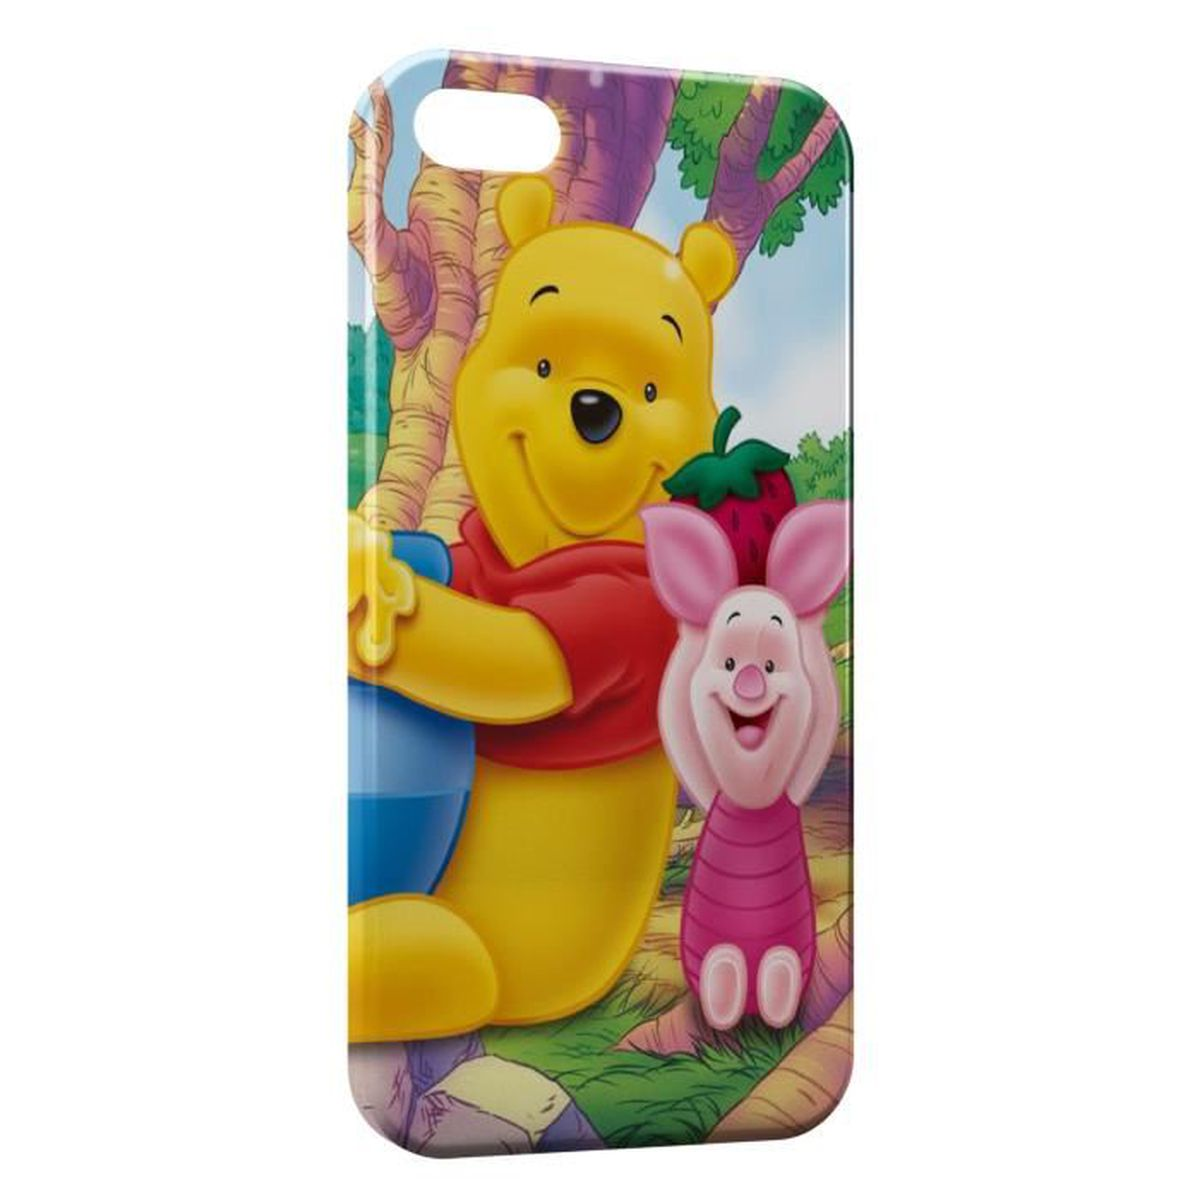 coque iphone 7 winnie